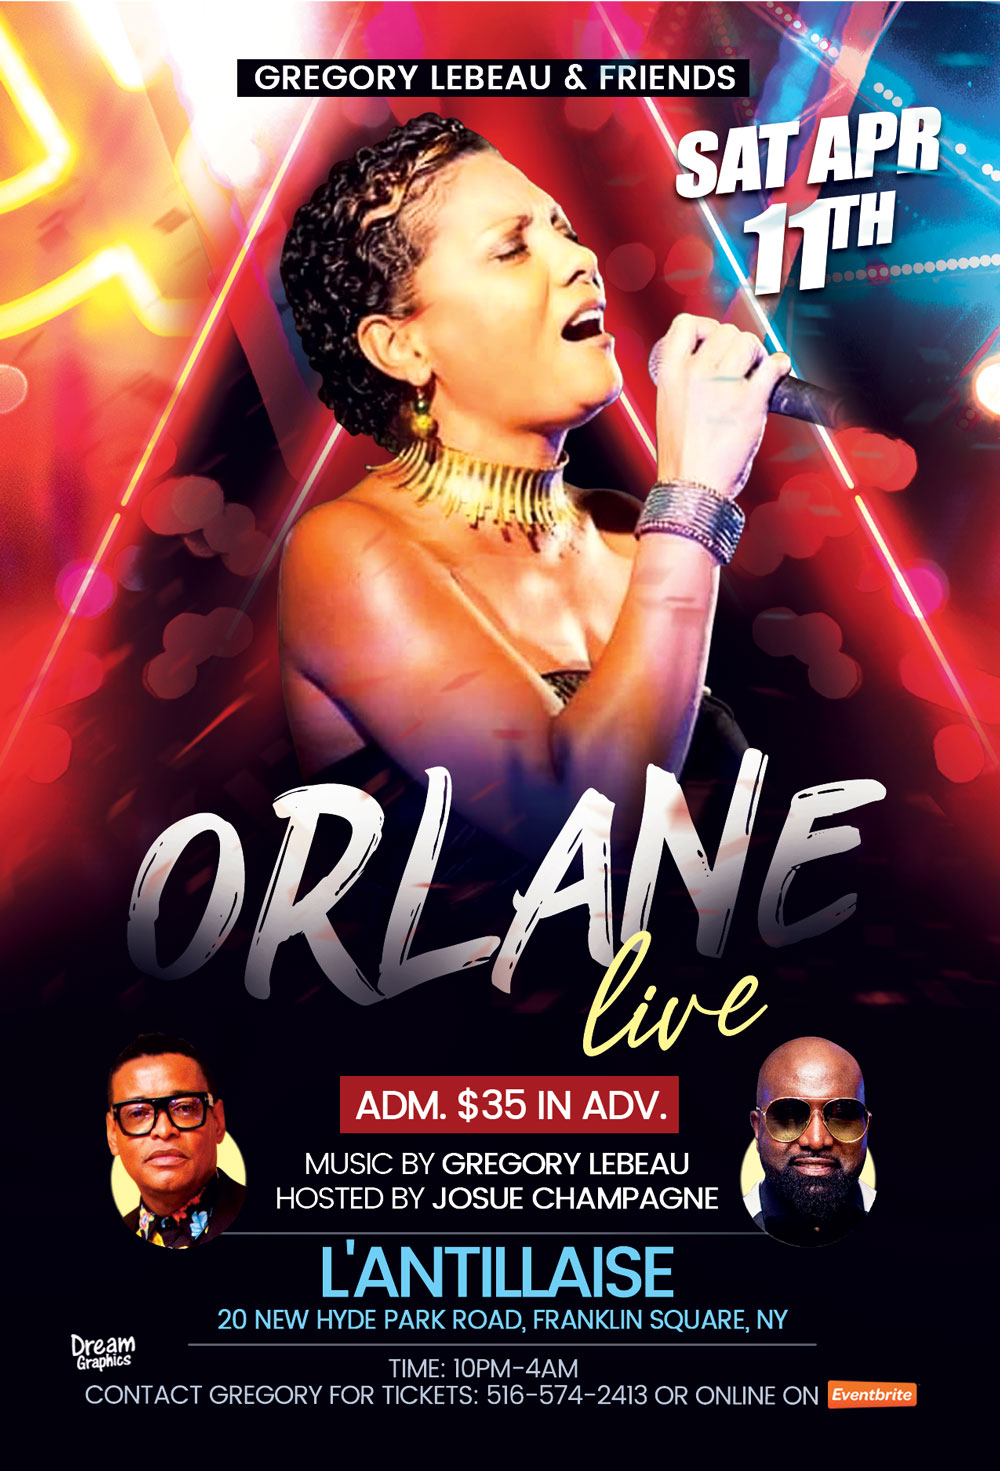 ORLANE PERFORMING LIVE AT L'ANTILLAISE APRIL 11TH